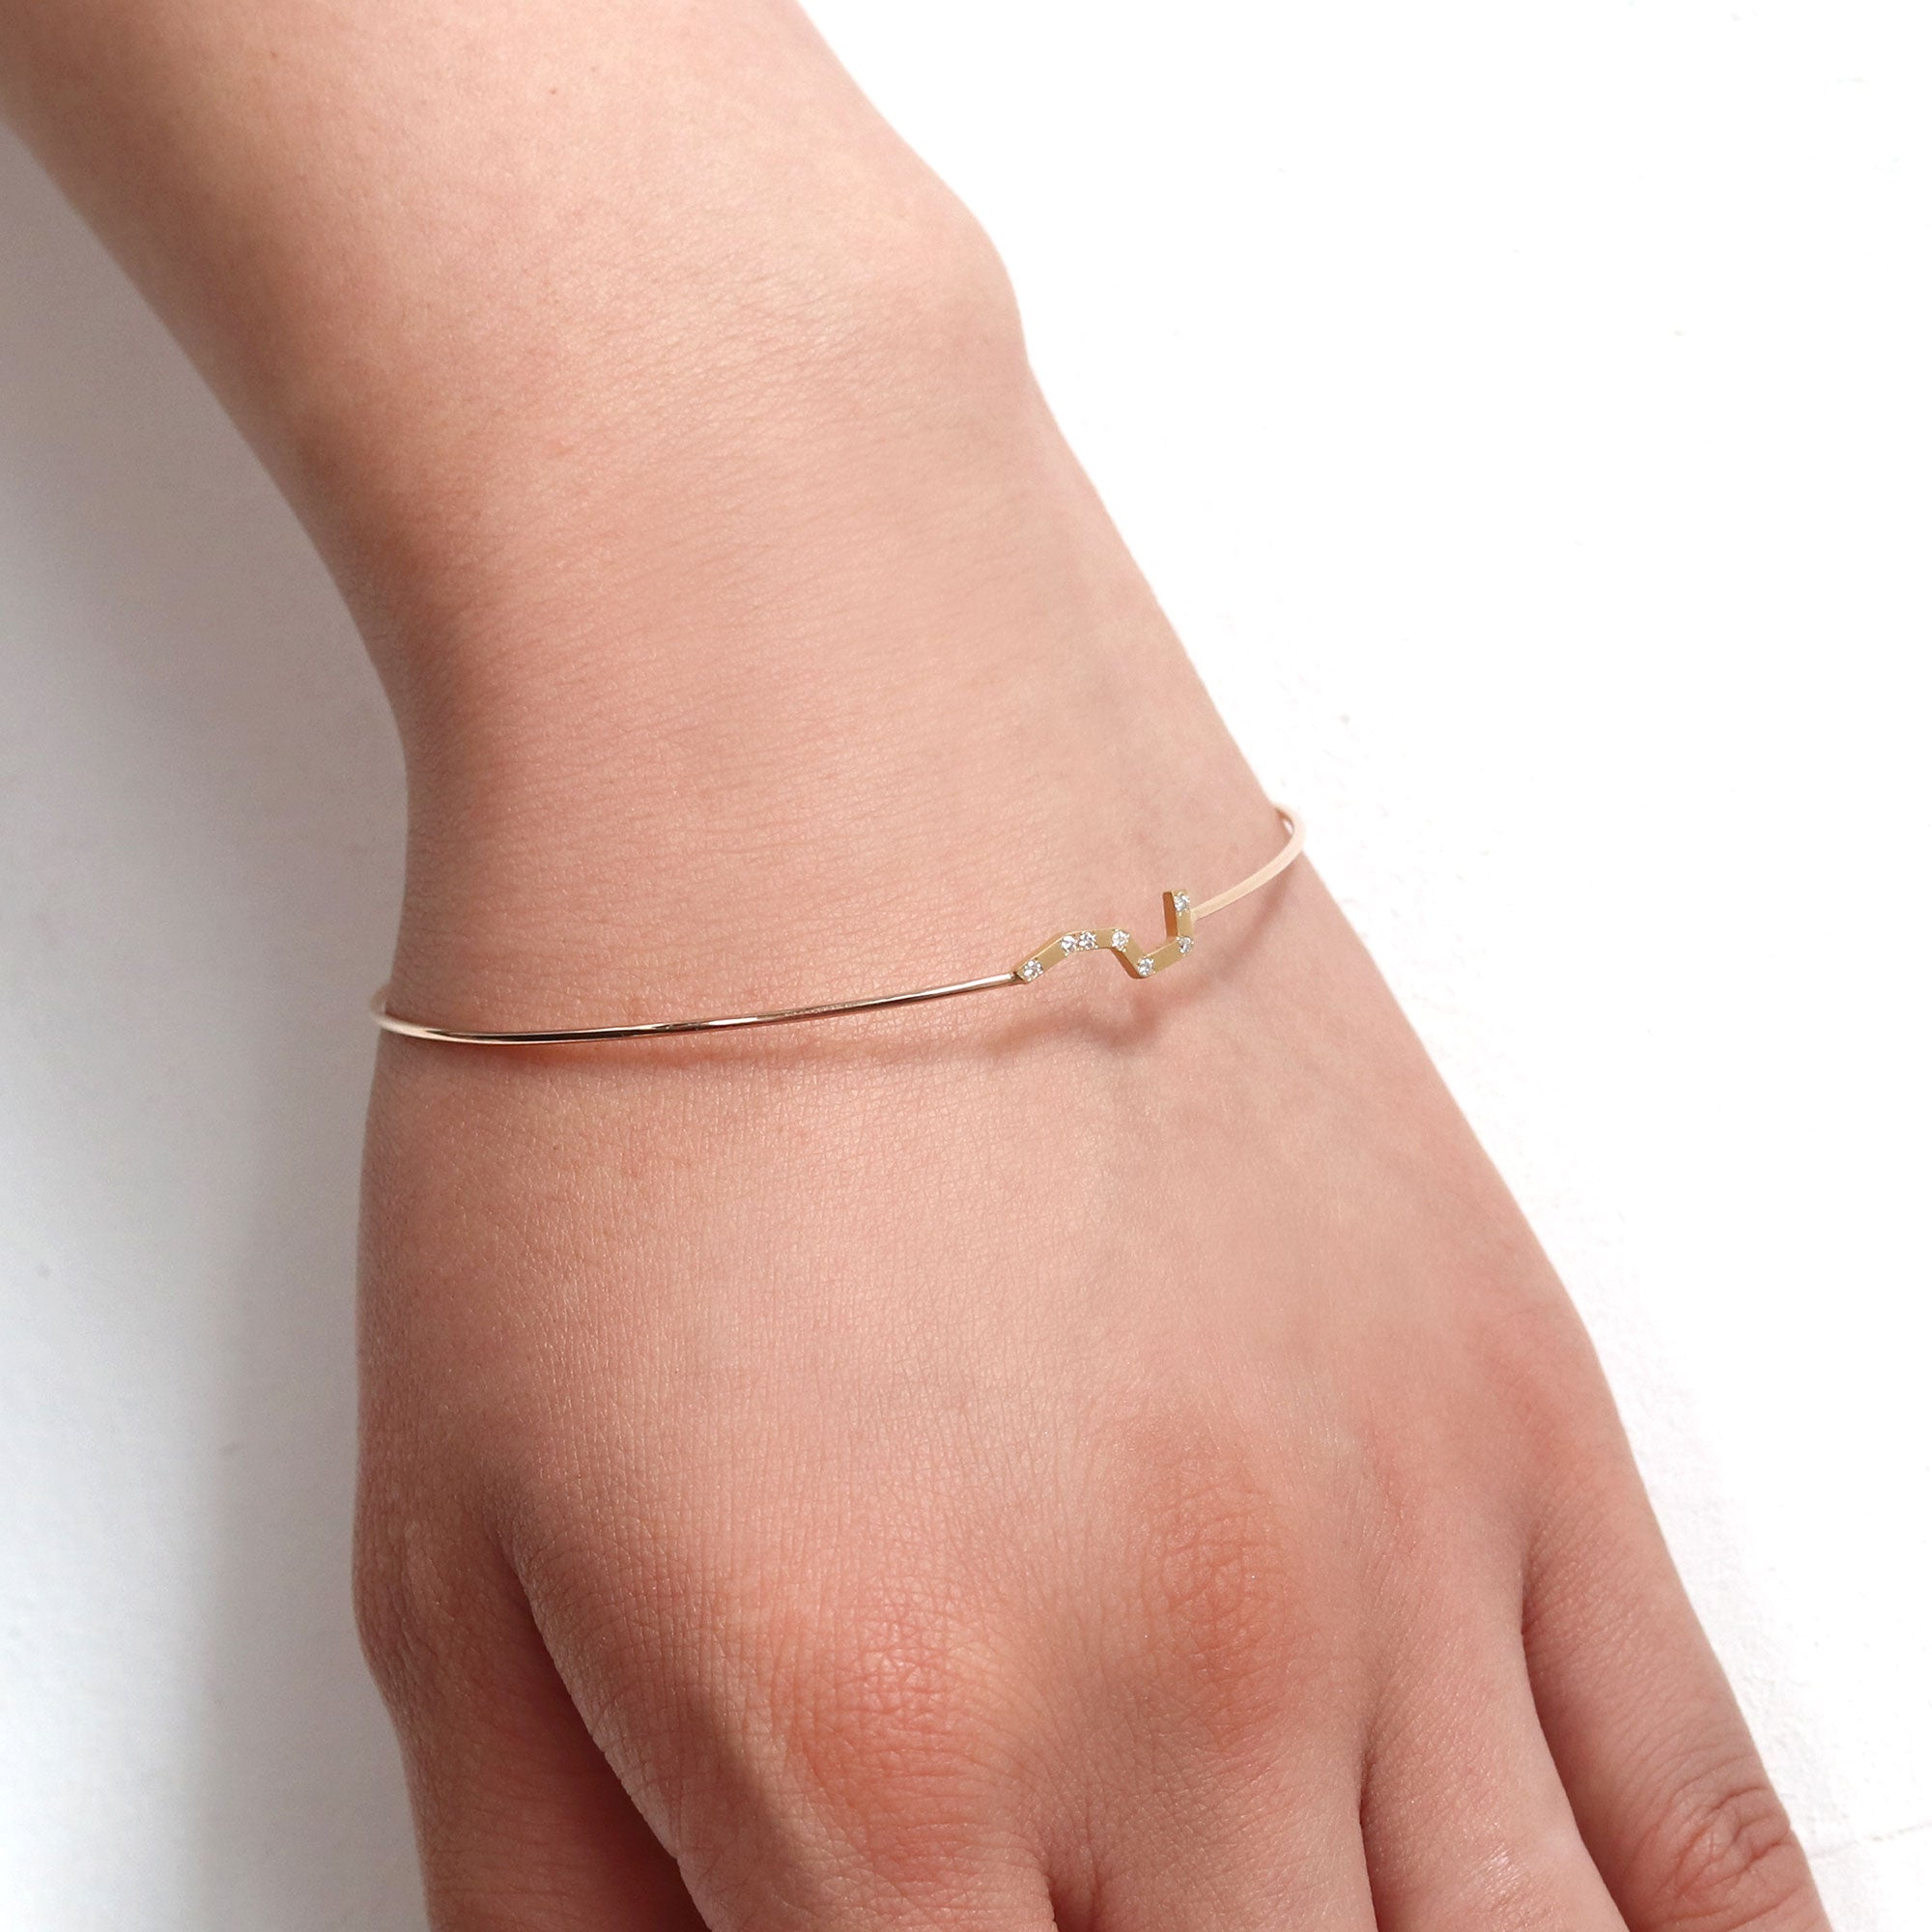 Big Dipper deco bangle